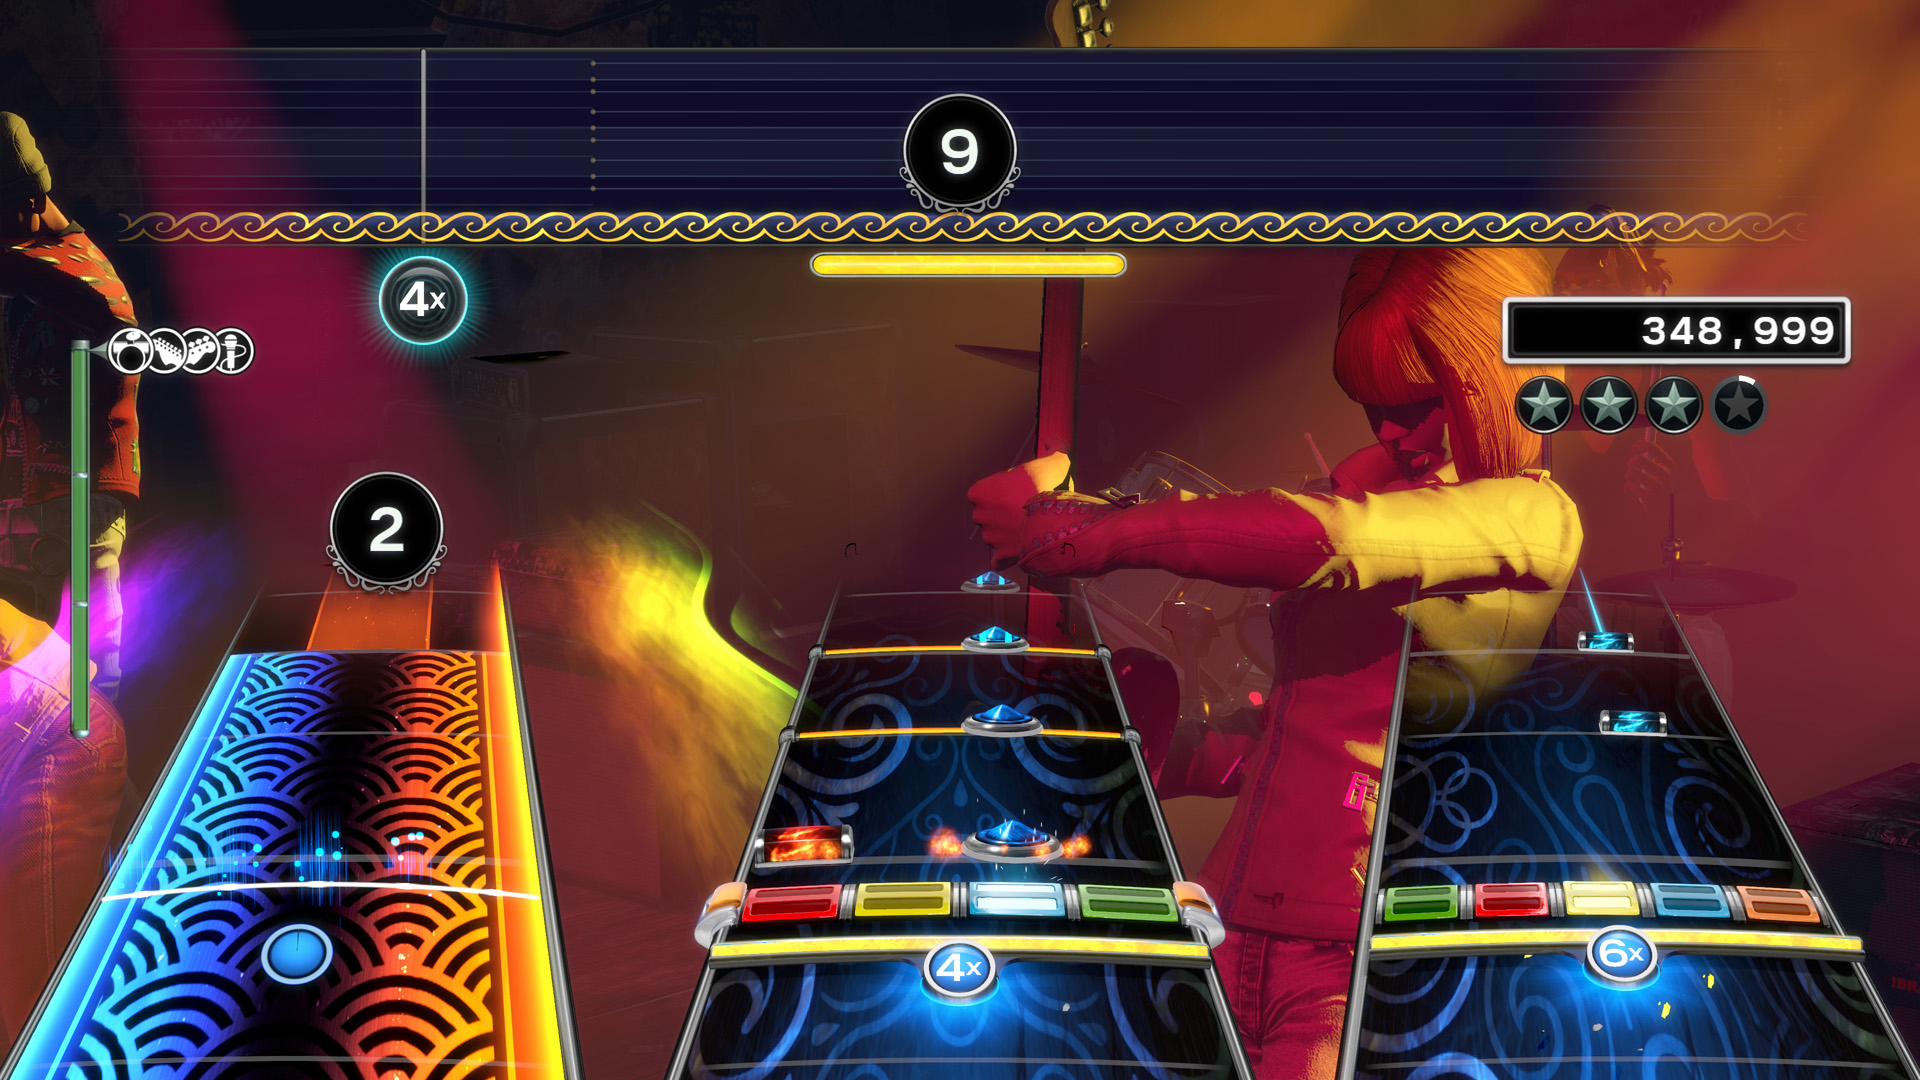 Rock Band 4 Playable At EGX 2015